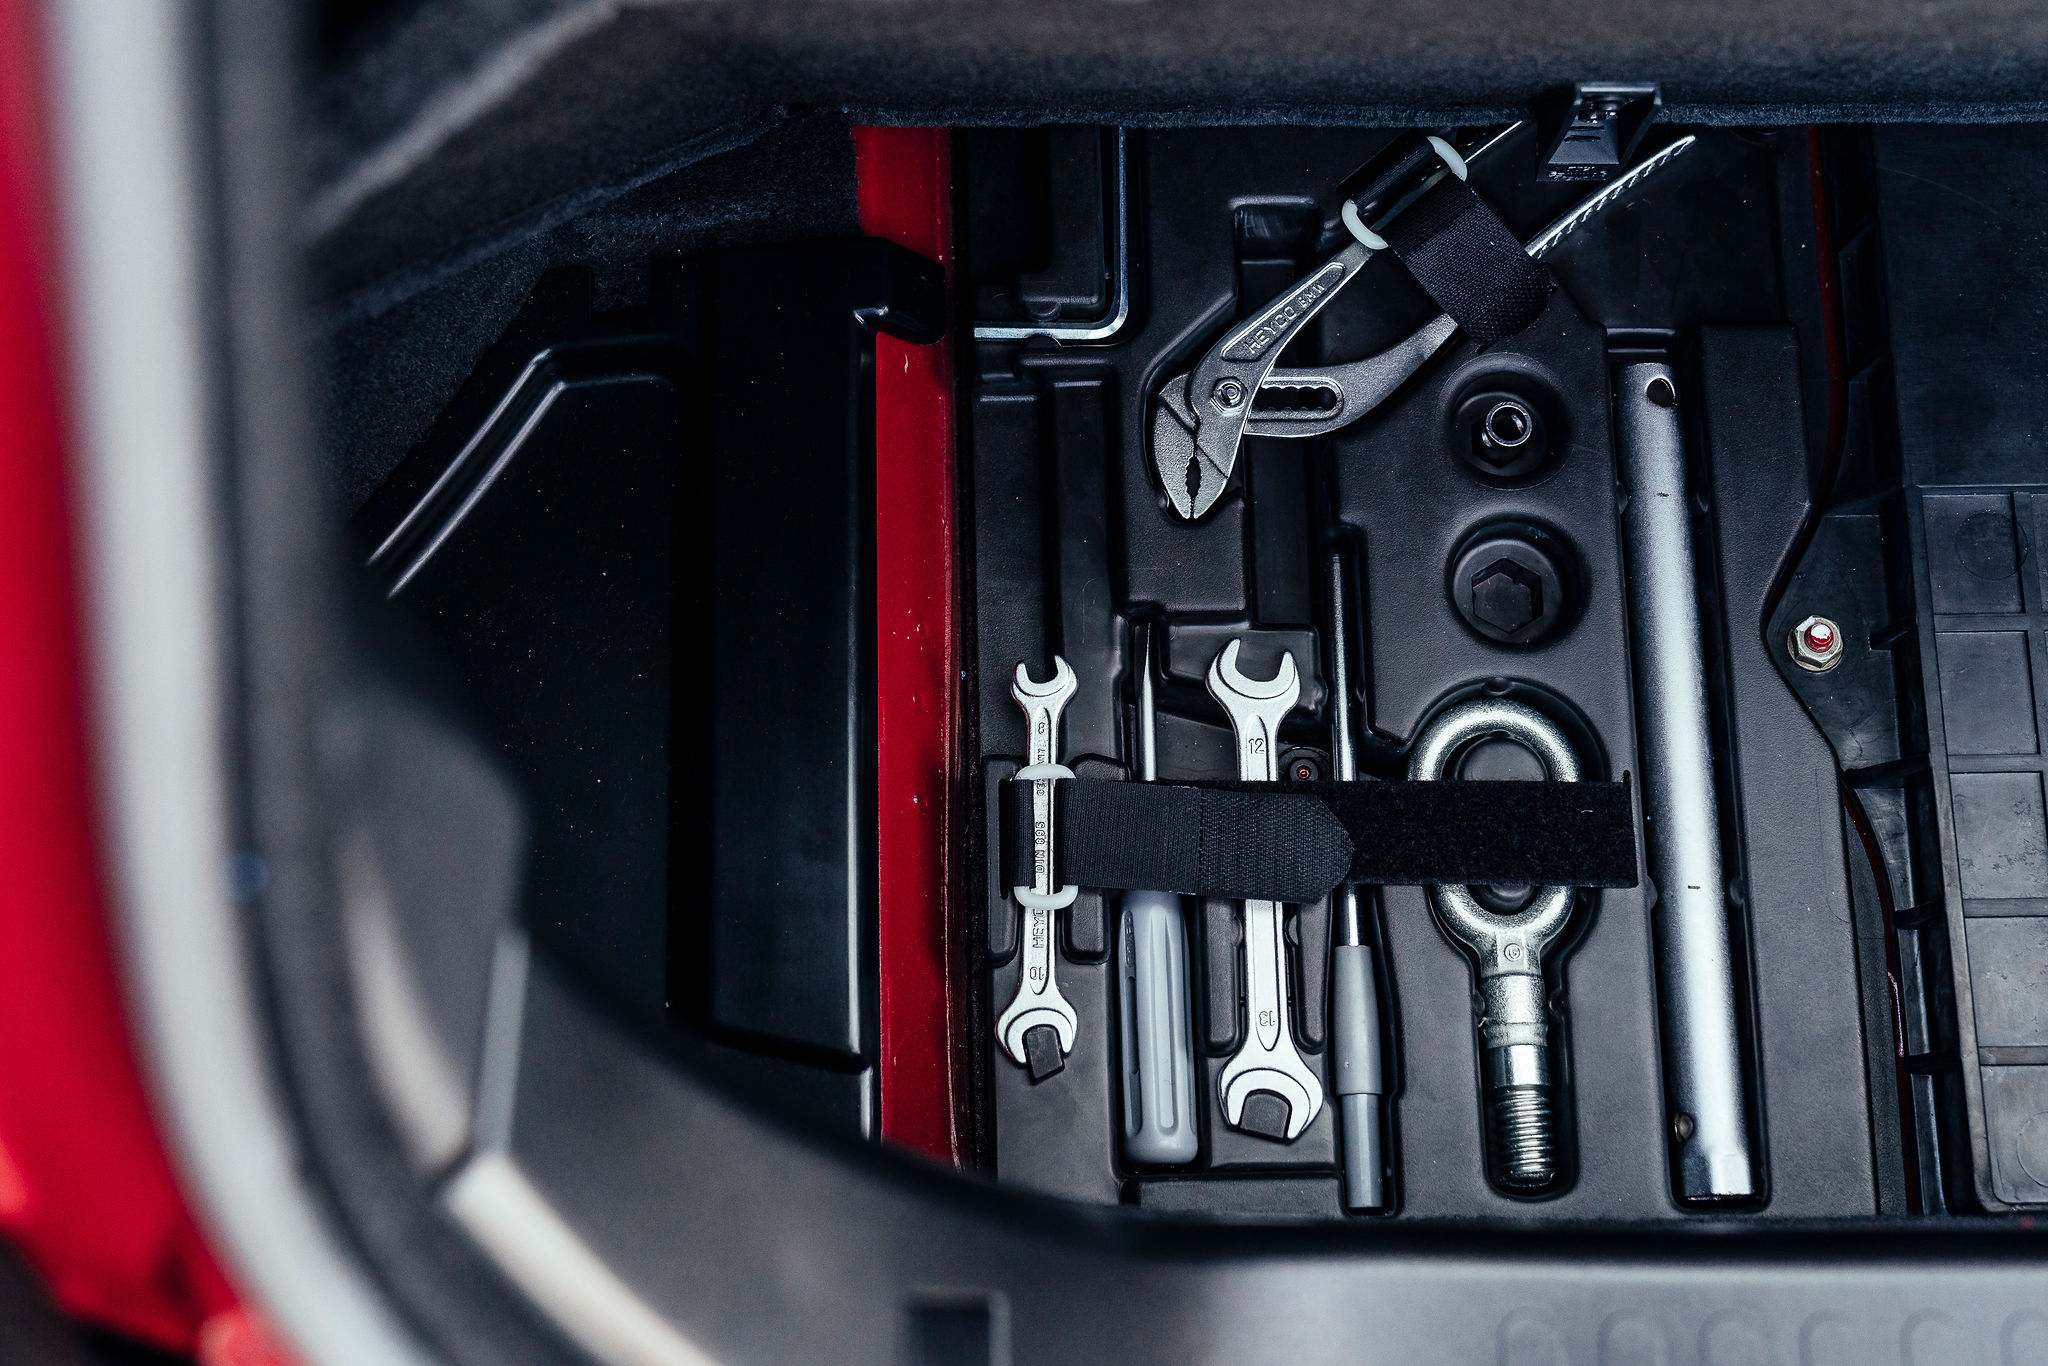 2002 BMW Z3 M Coupe tool kit